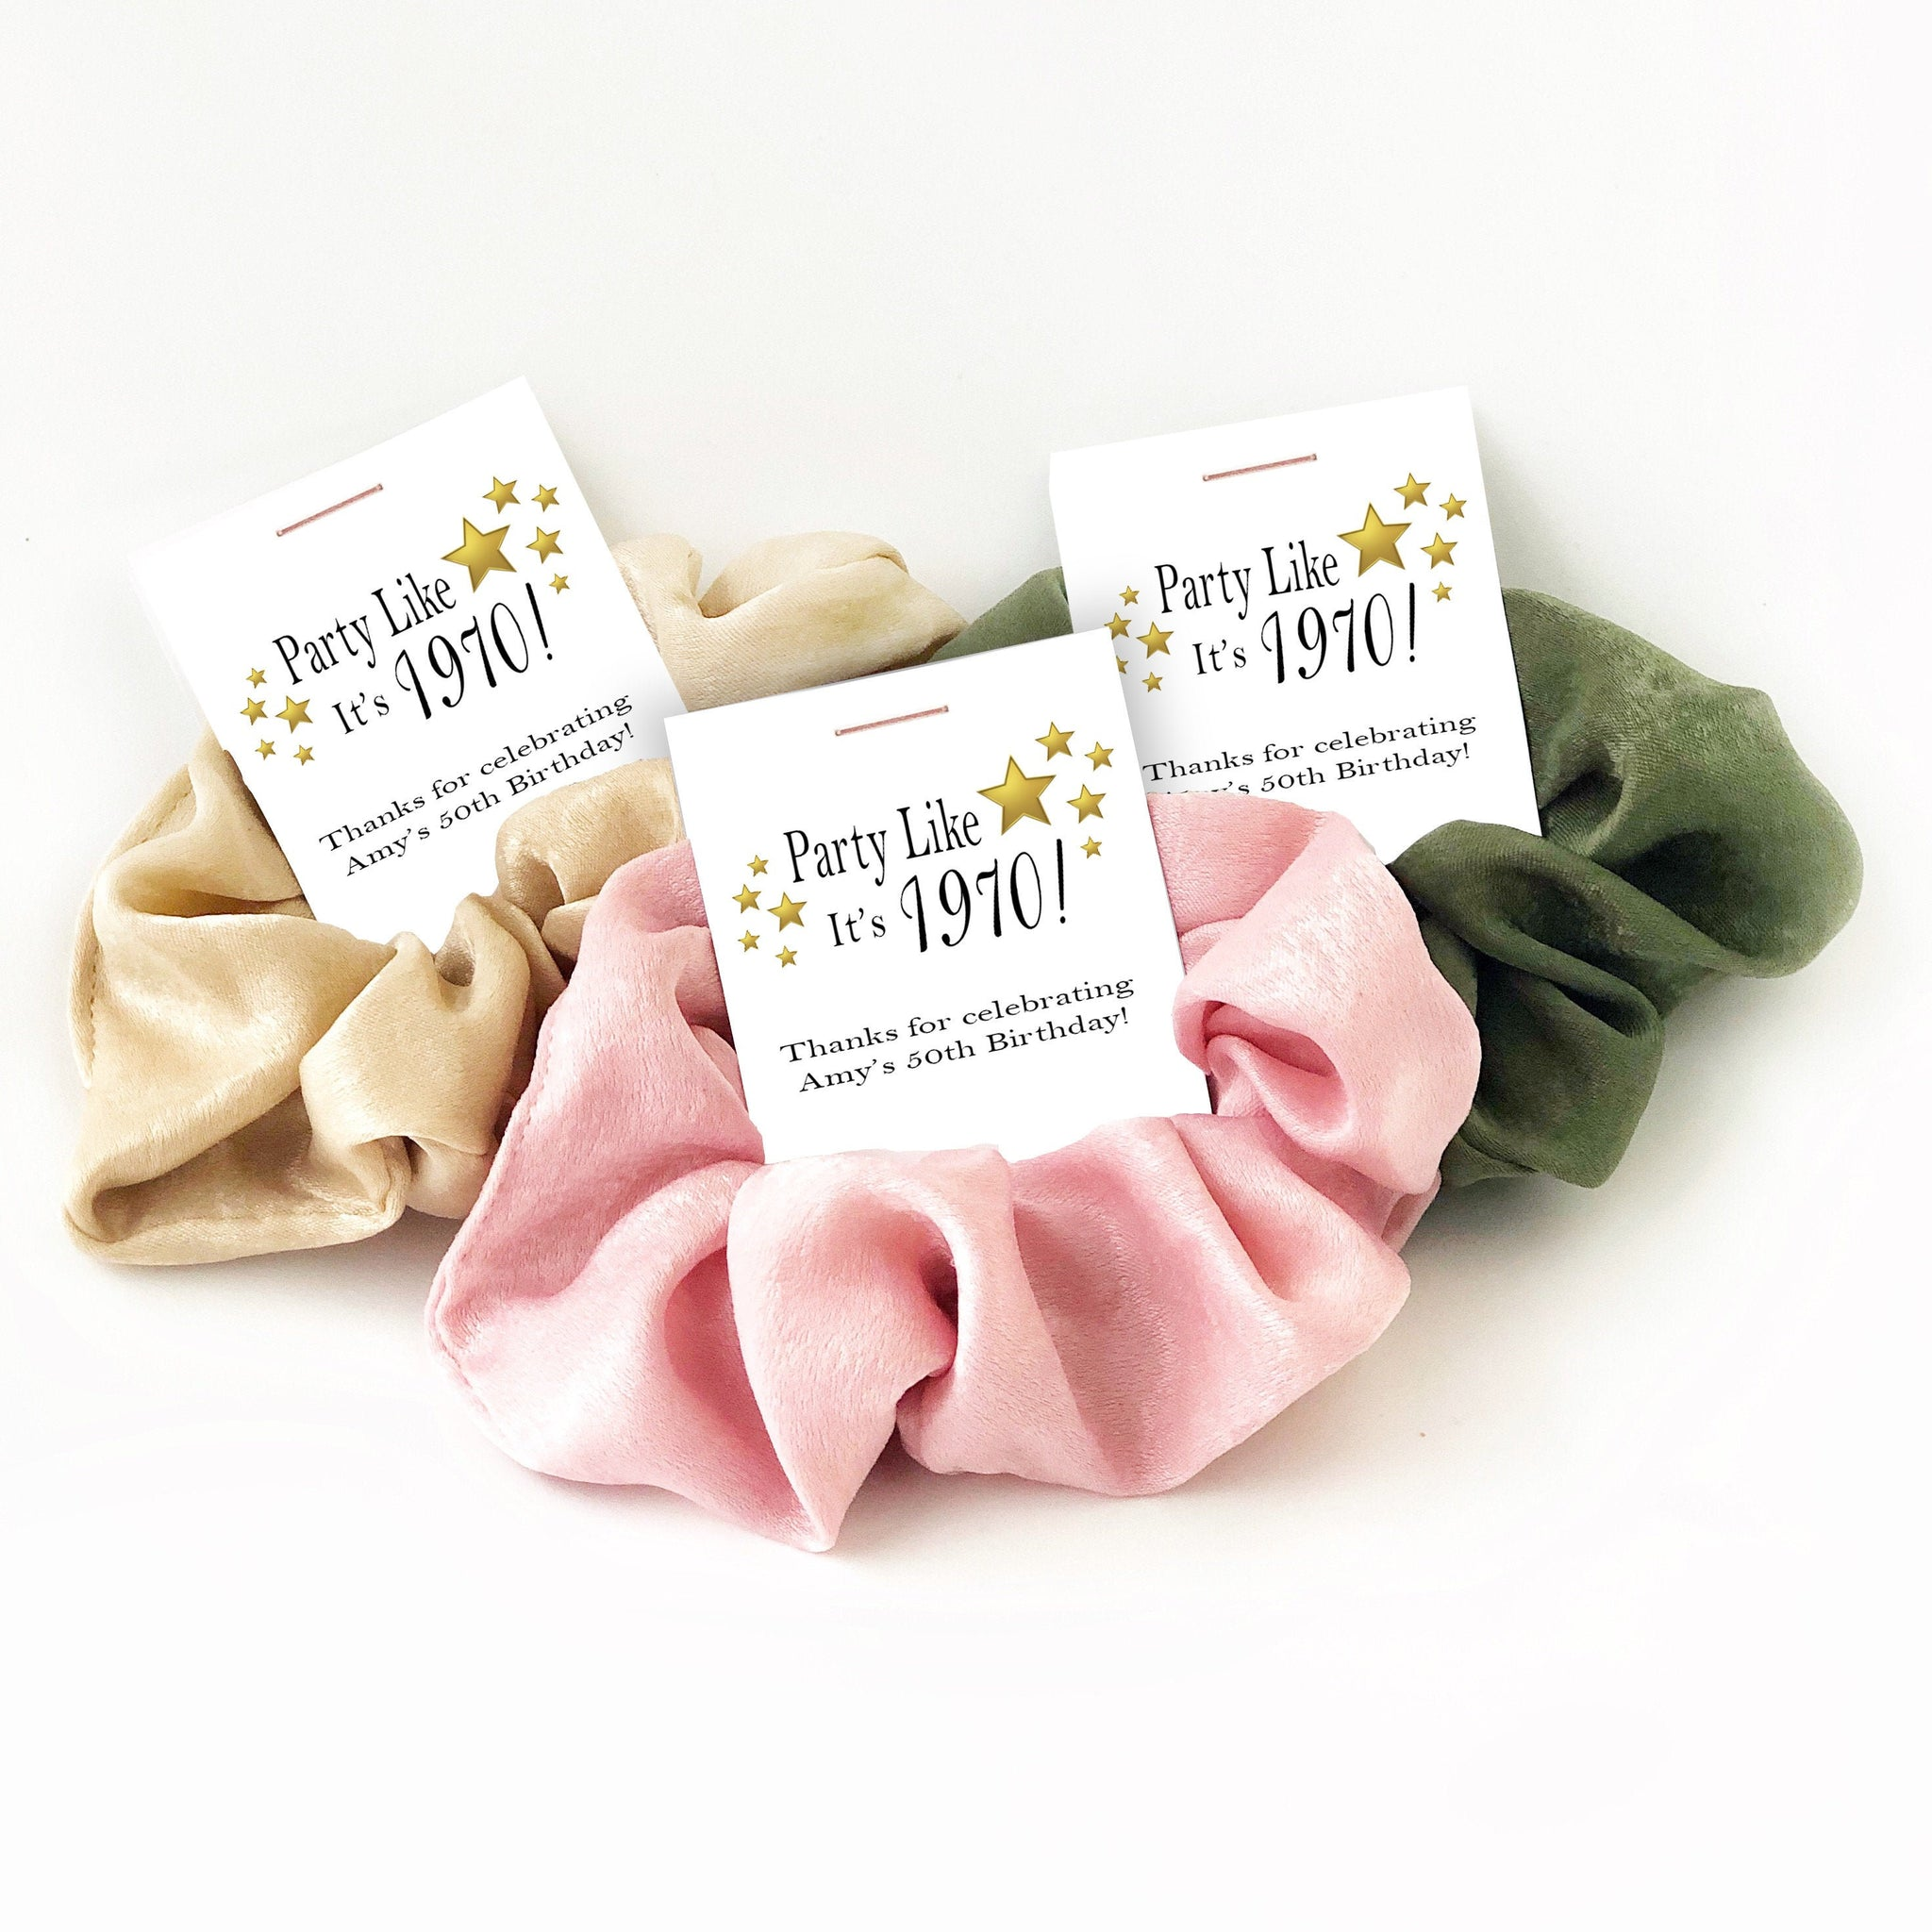 50th Birthday Party Favors, Hair Scrunchies - @PlumPolkaDot